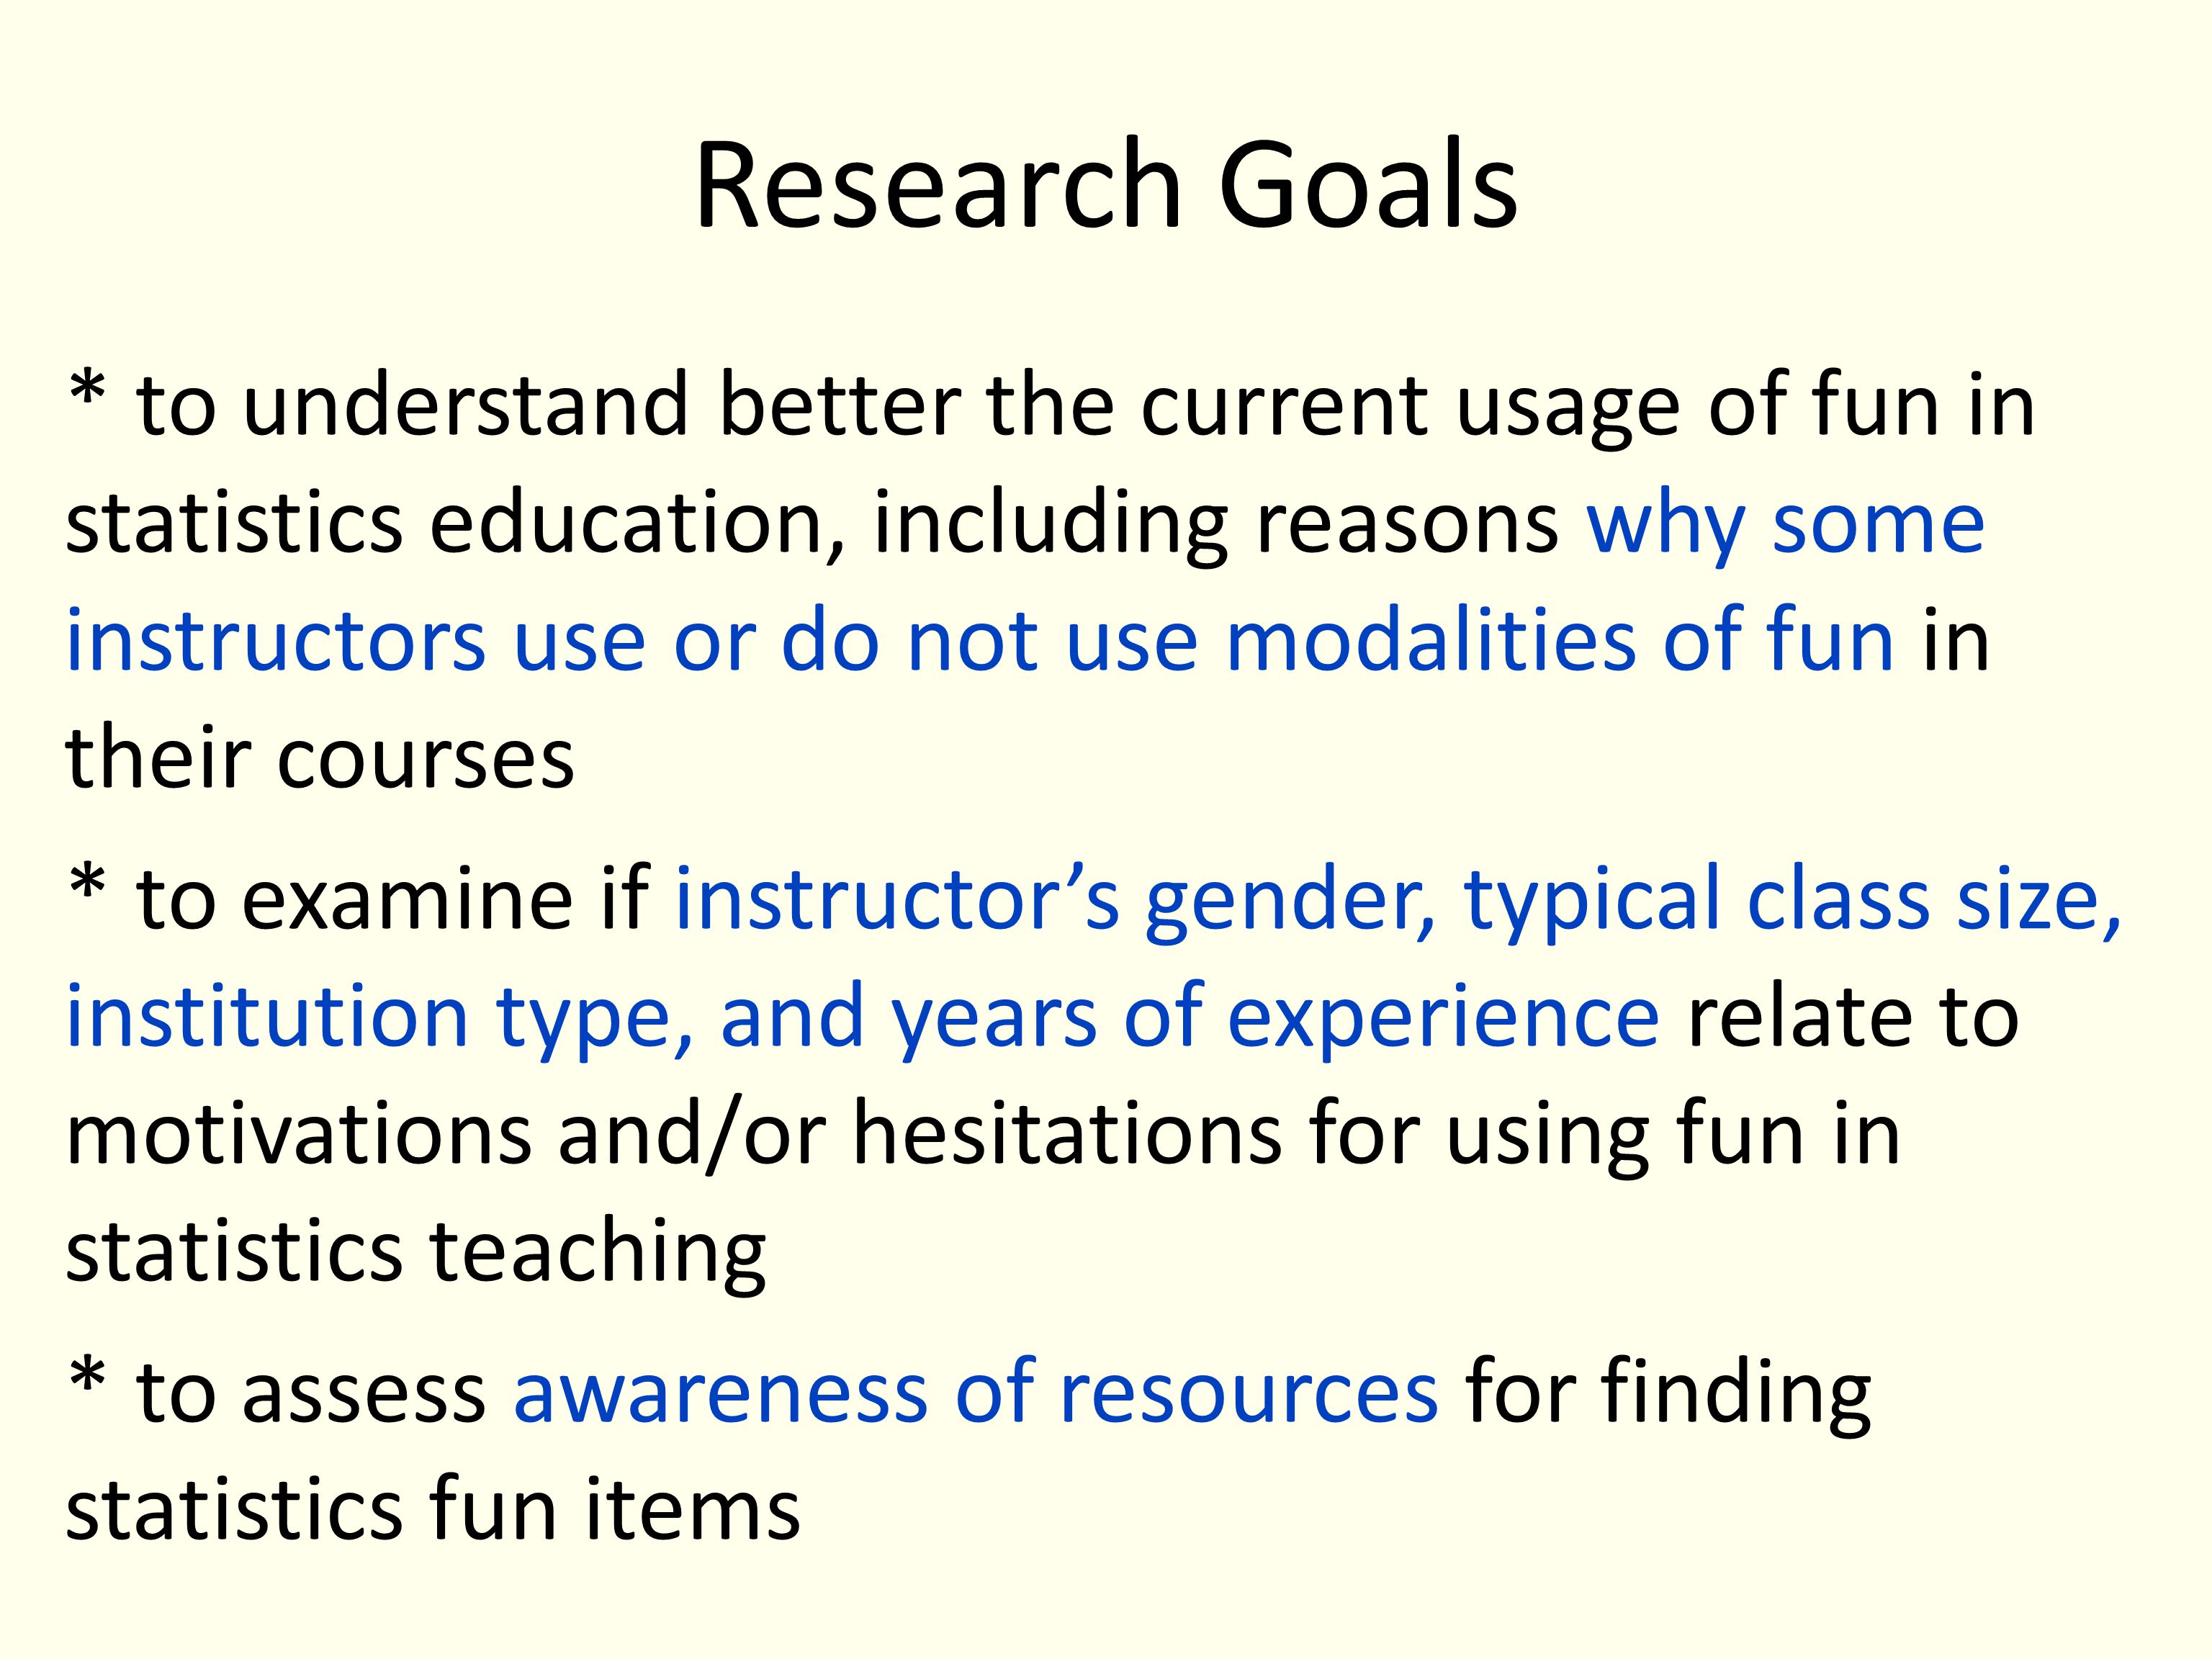 Research Goals * to understand better the current usage of fun in statistics education, including reasons why some instructors use or do not use modalities of fun in their courses * to examine if instructors gender, typical class size, institution type, and years of experience relate to motivations and/or hesitations for using fun in statistics teaching * to assess awareness of resources for finding statistics fun items